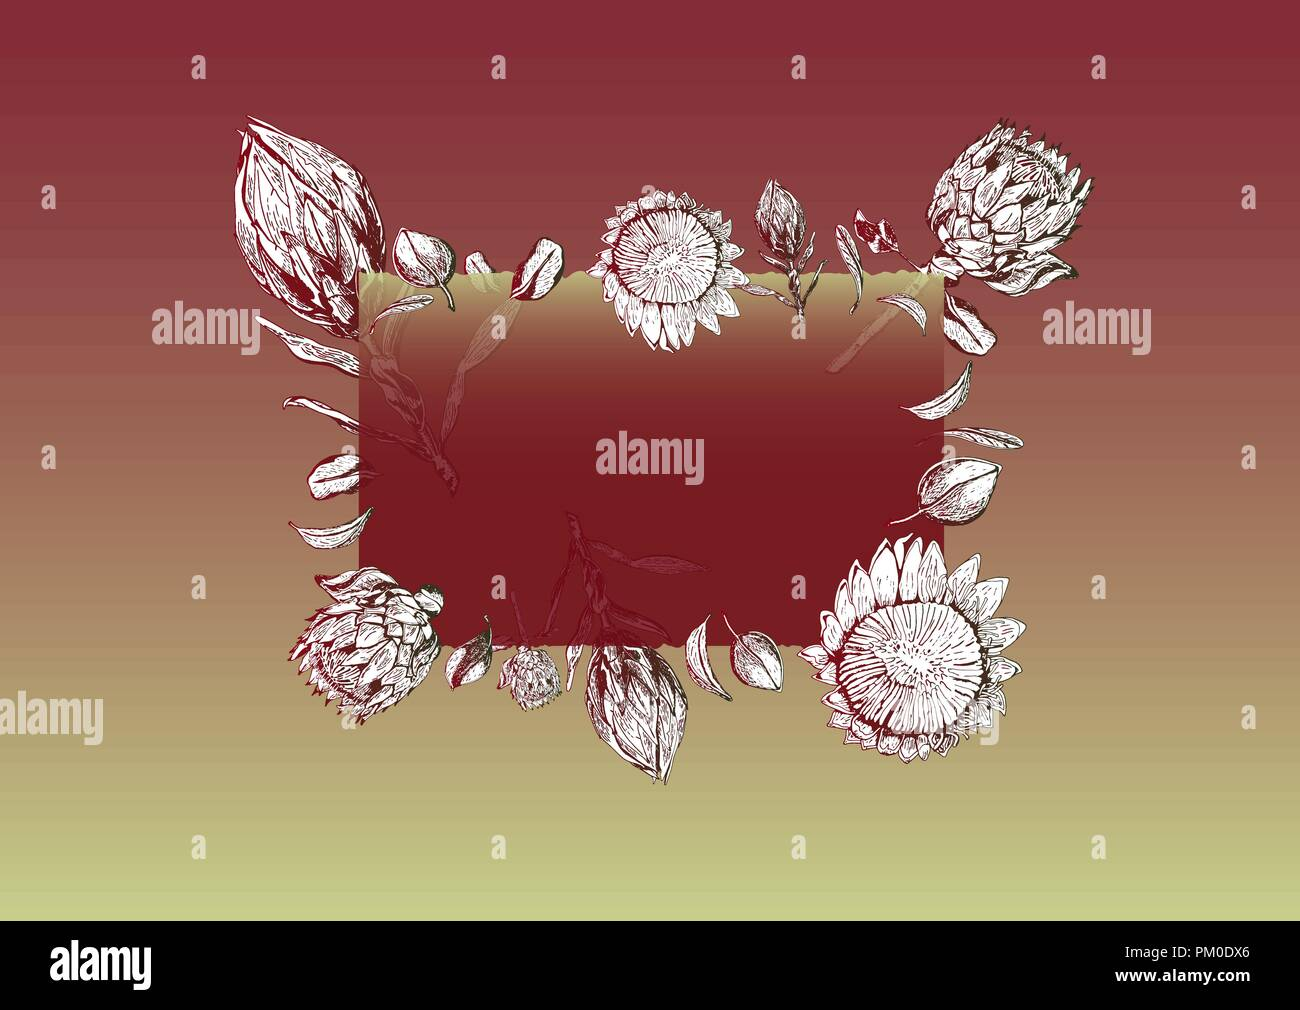 South Africa Stock Vector Images Alamy